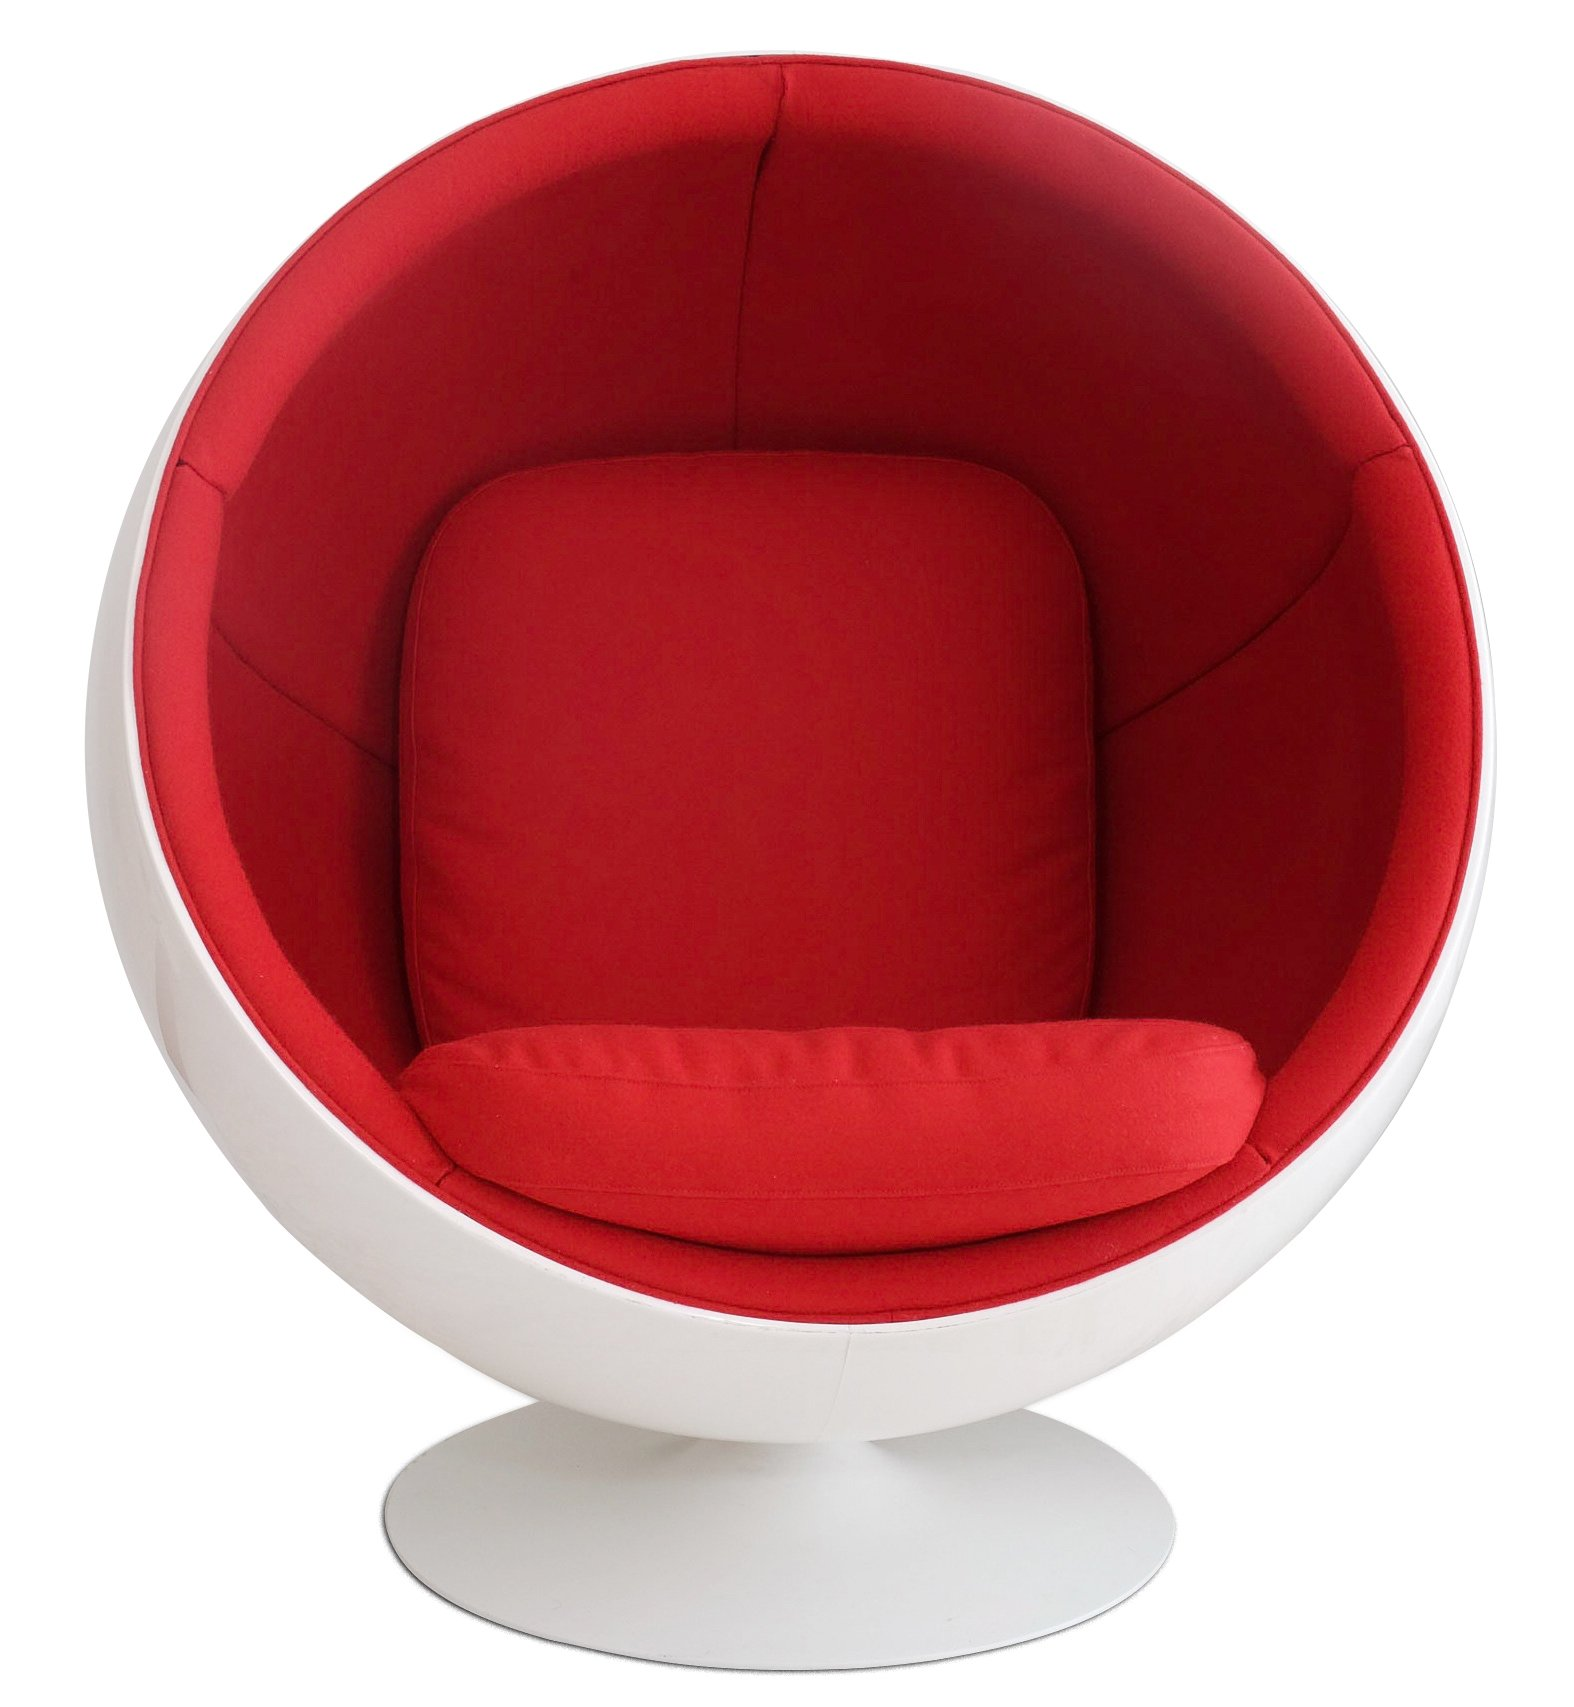 eero aarnio ball chair in kvadrat by adelta 81880